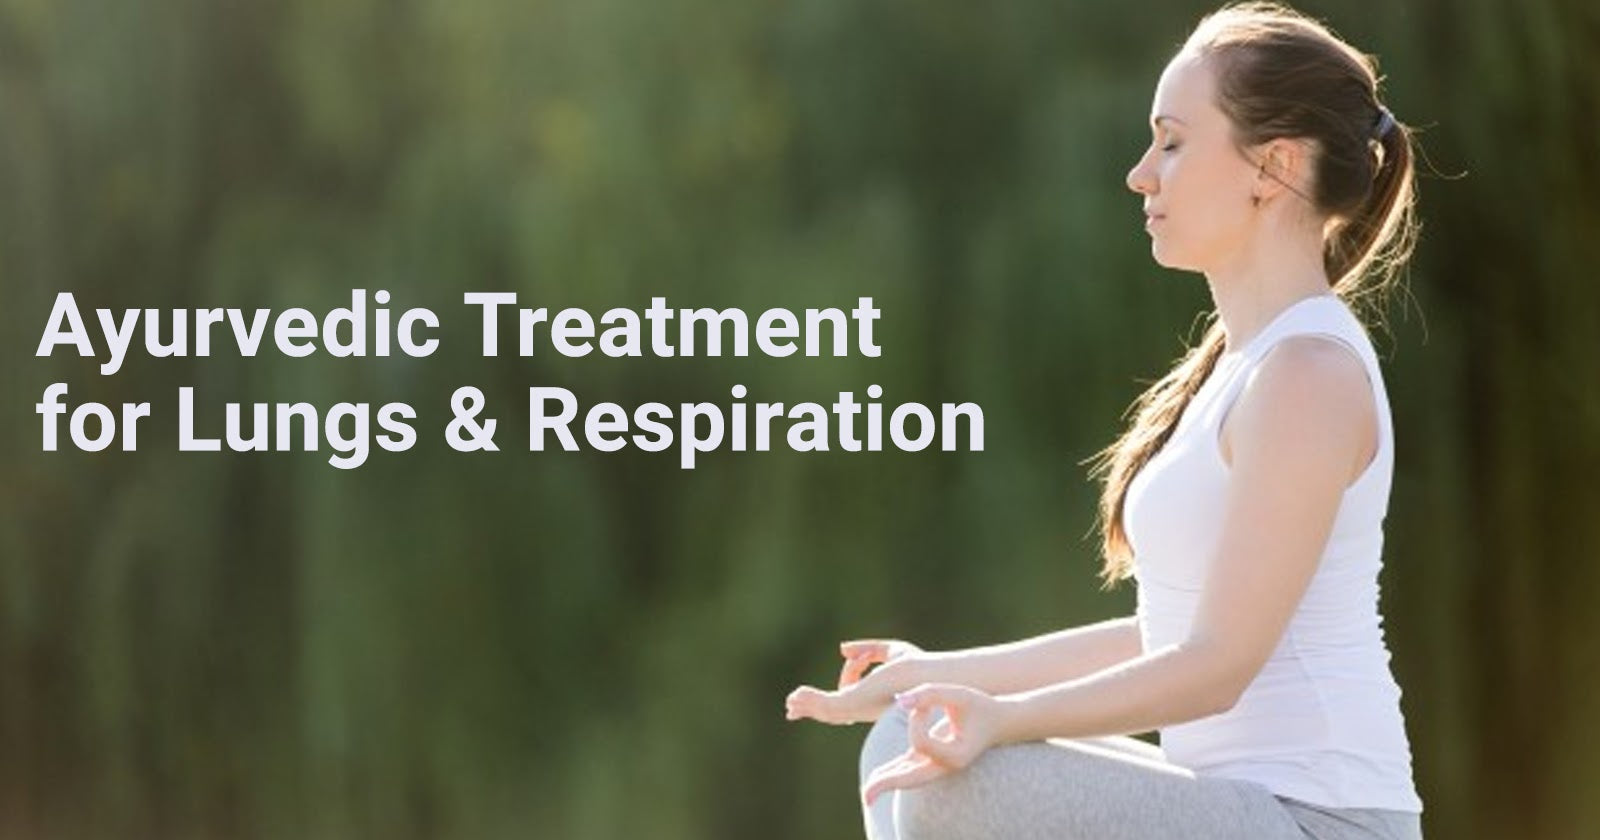 lungs & respiration treatment in ayurveda